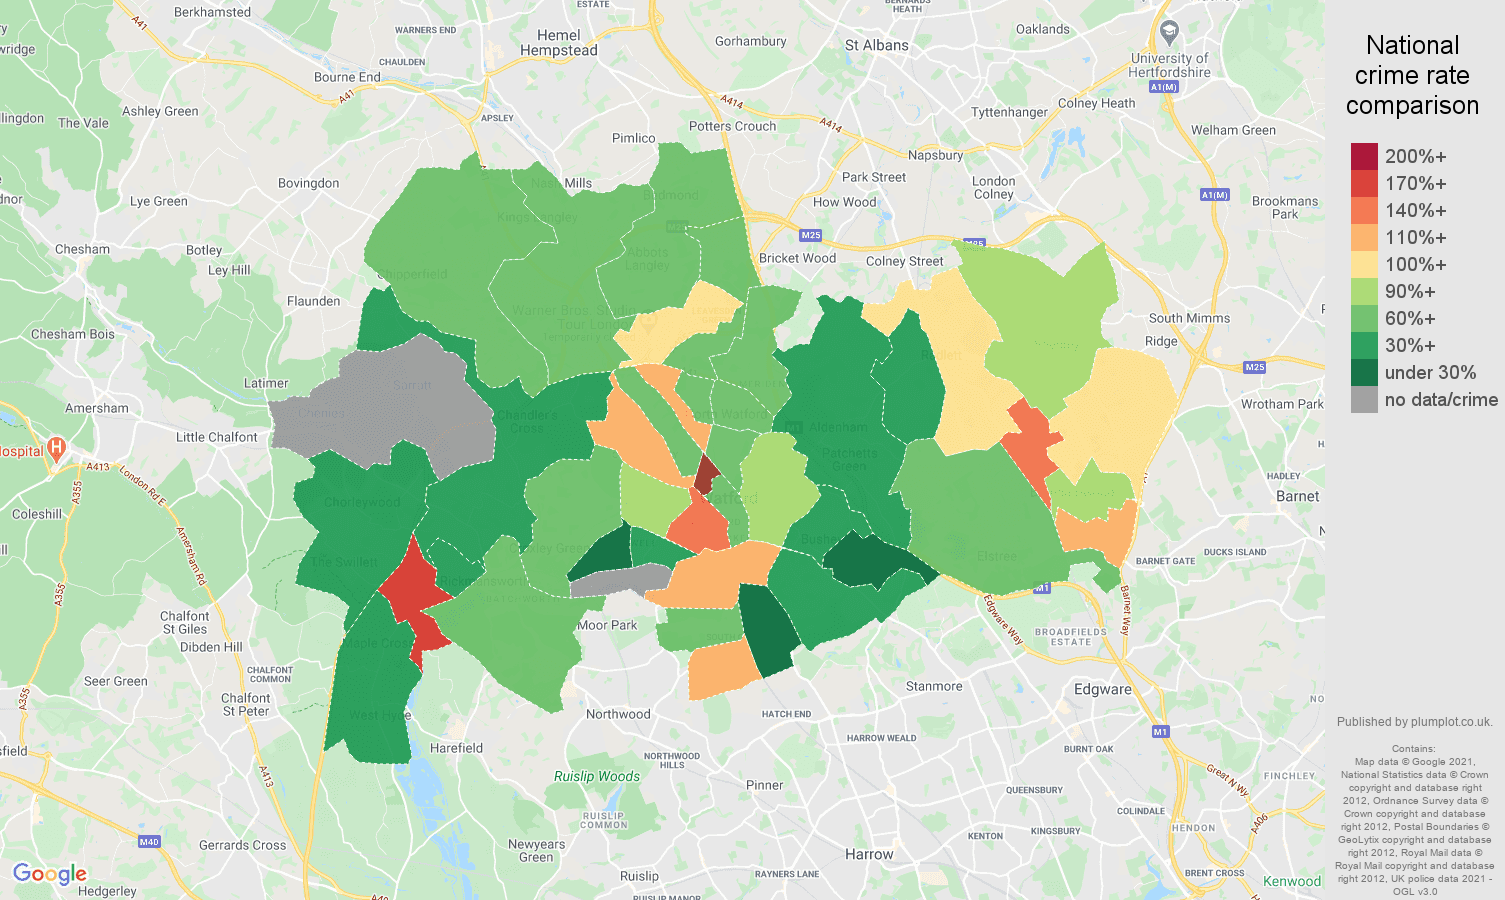 Watford drugs crime rate comparison map